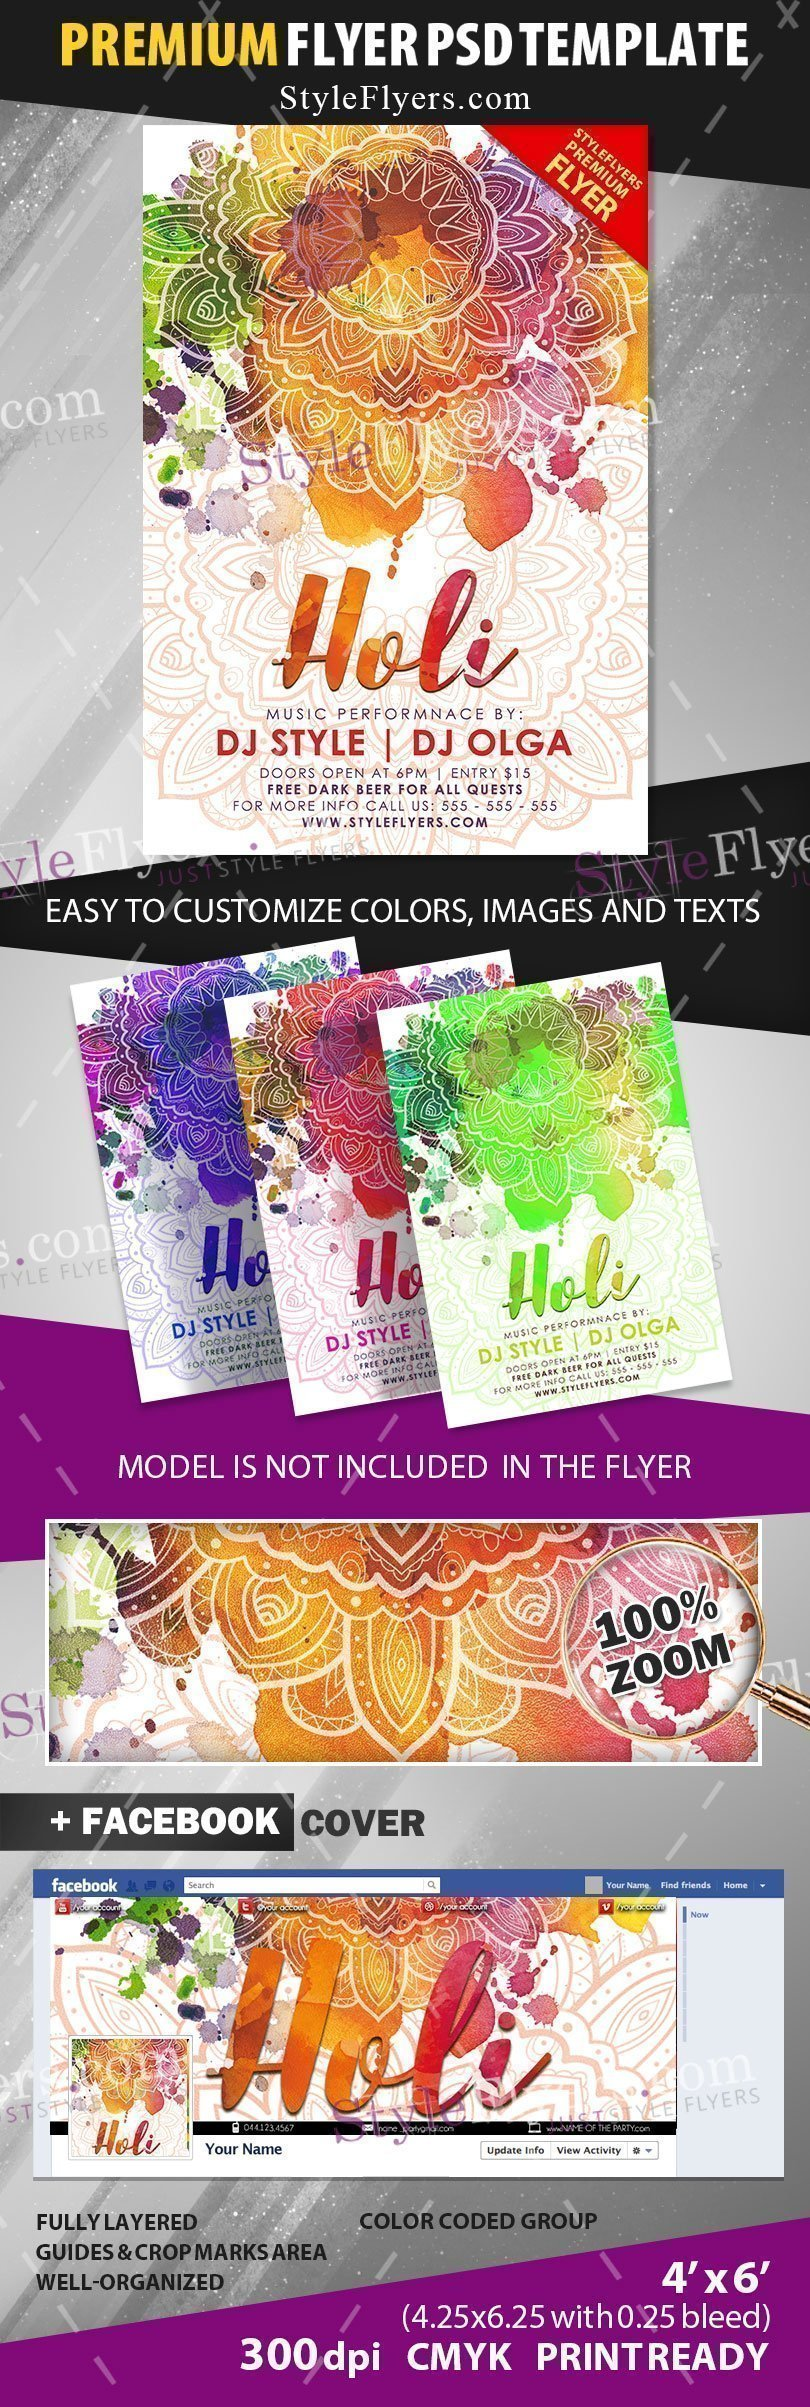 preview_Holi_Flyer_premium_template